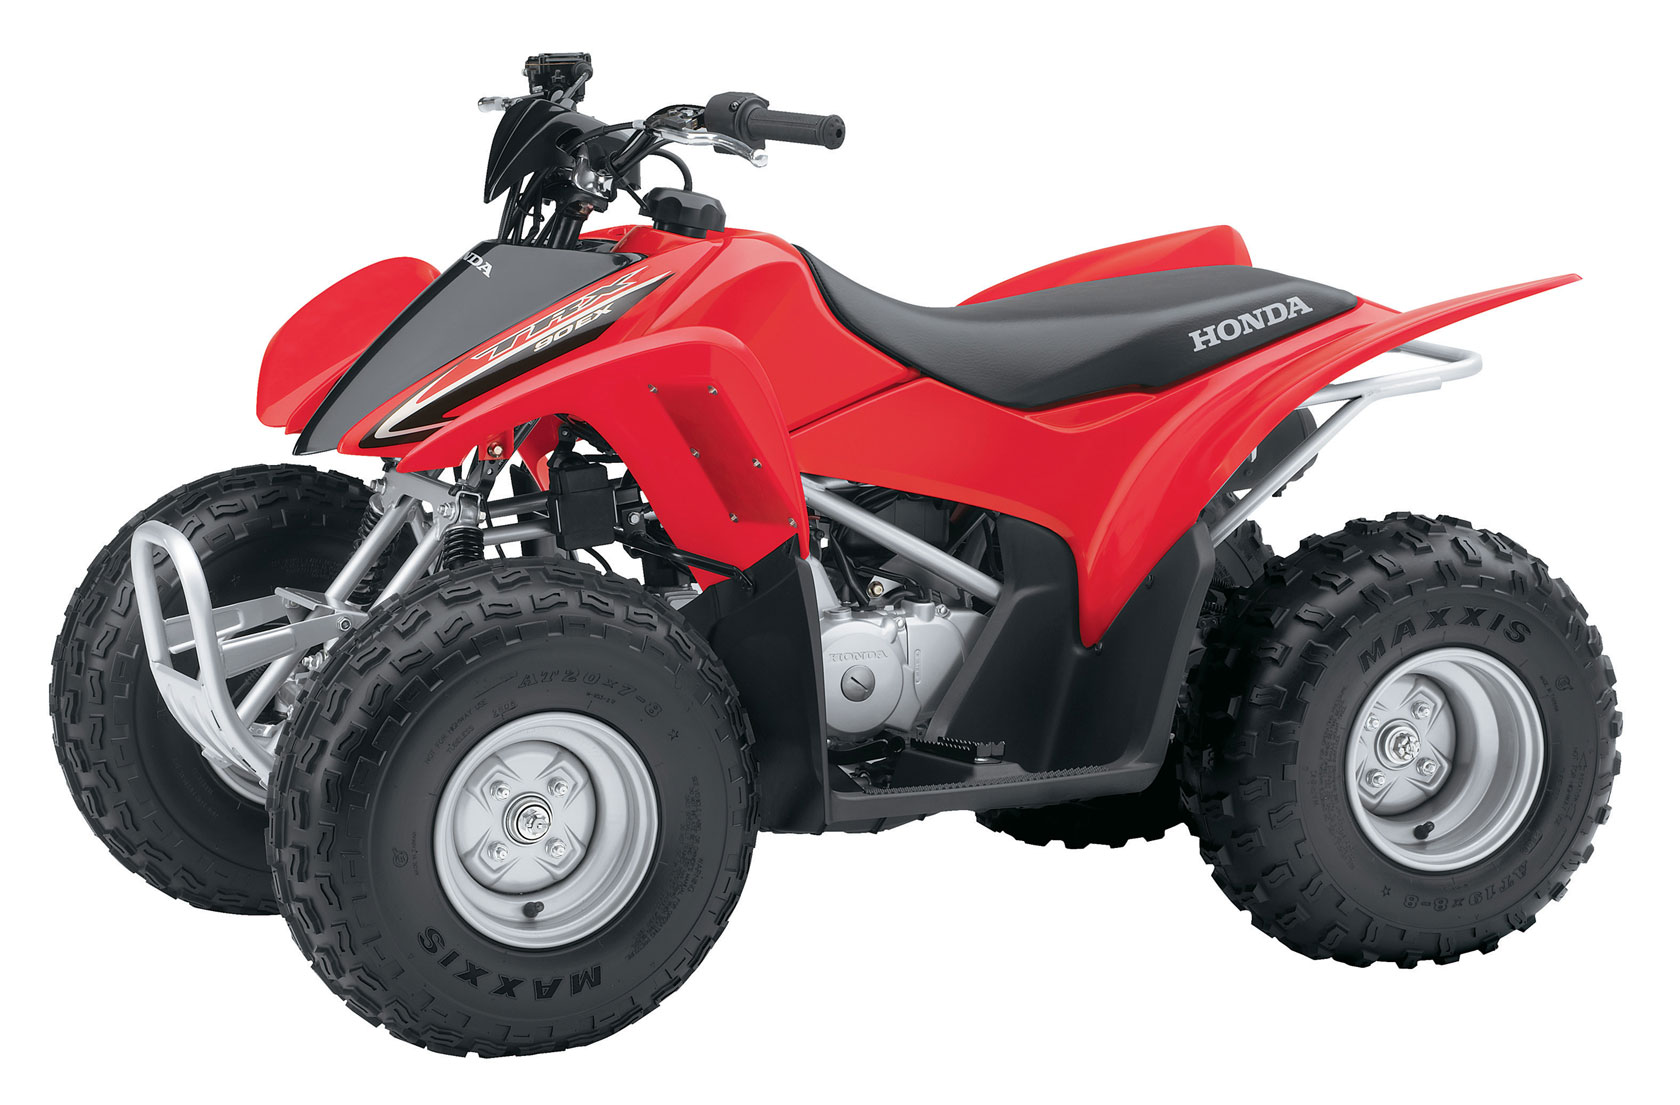 Polaris Sportsman 400 Fuse Location together with 2016 Ford Ranger Review likewise Honda Recon 250 Wiring Diagram further Arctic Cat 700 Wiring Diagram likewise Honda 420 Rancher Wiring Diagram. on 2005 honda rancher 350 wiring diagram